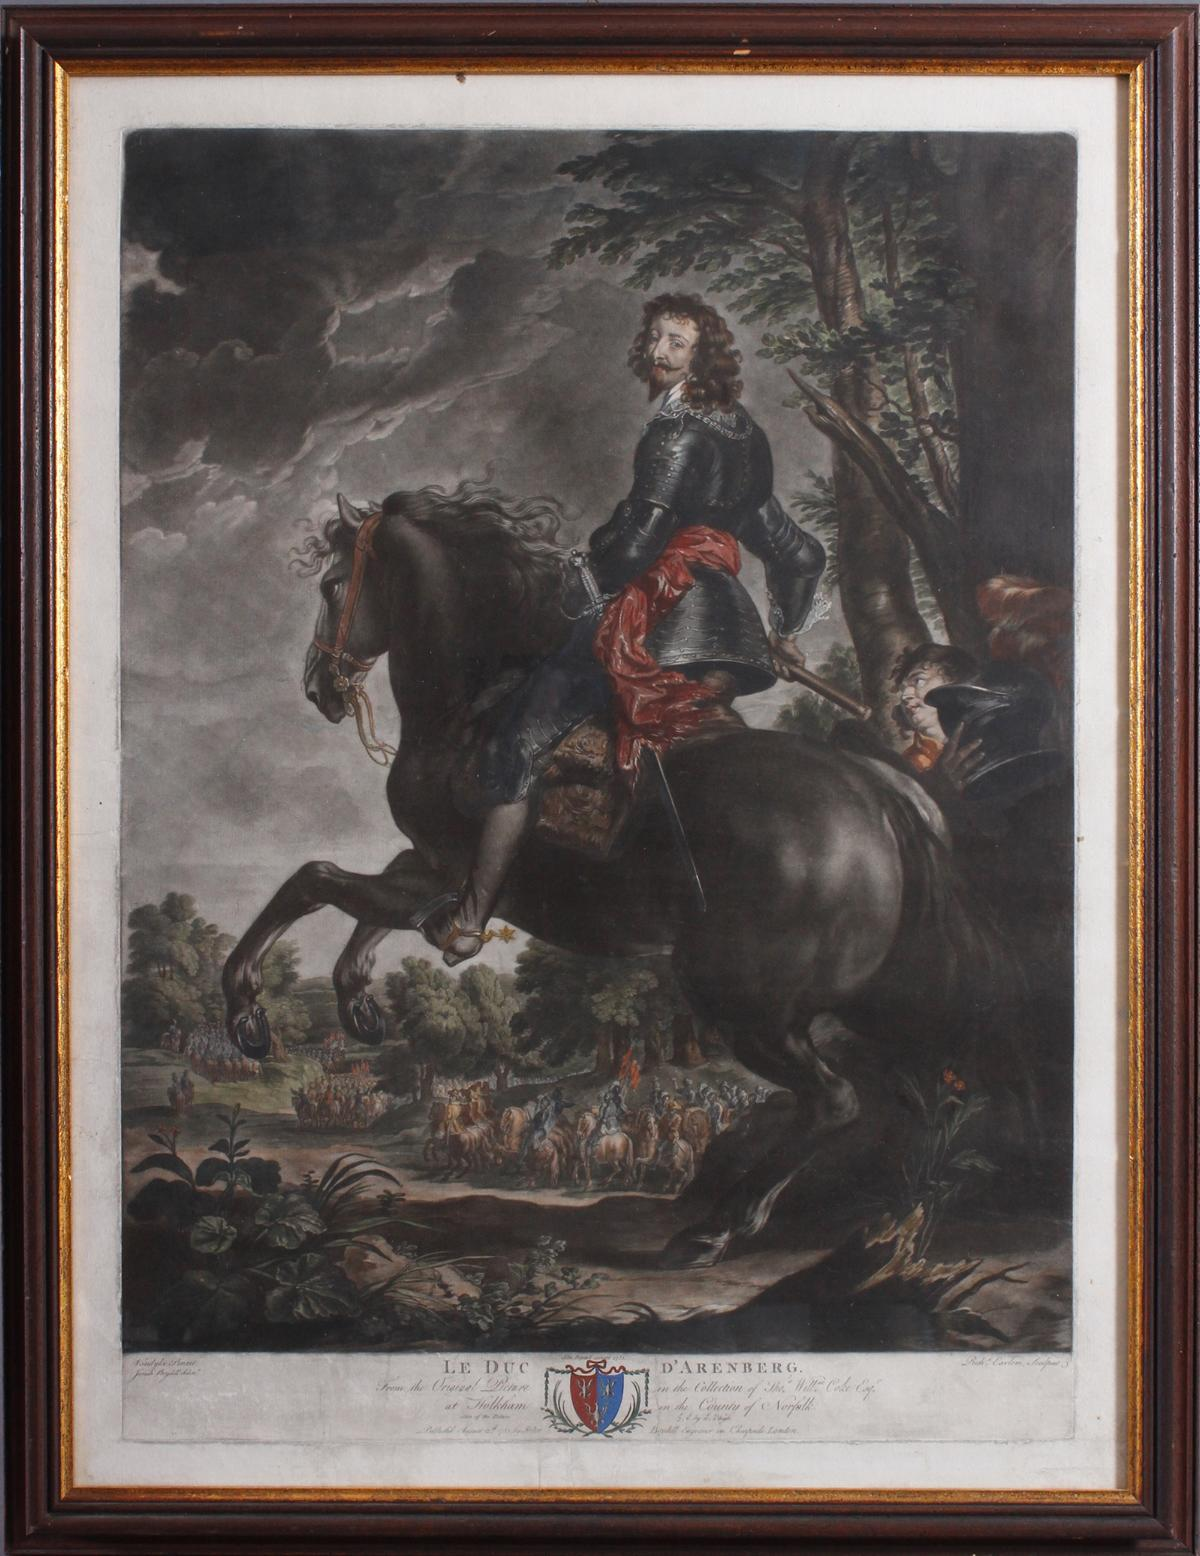 Earlom, Richard, 1743 – 1822 London. Le Duc D´Arenberg